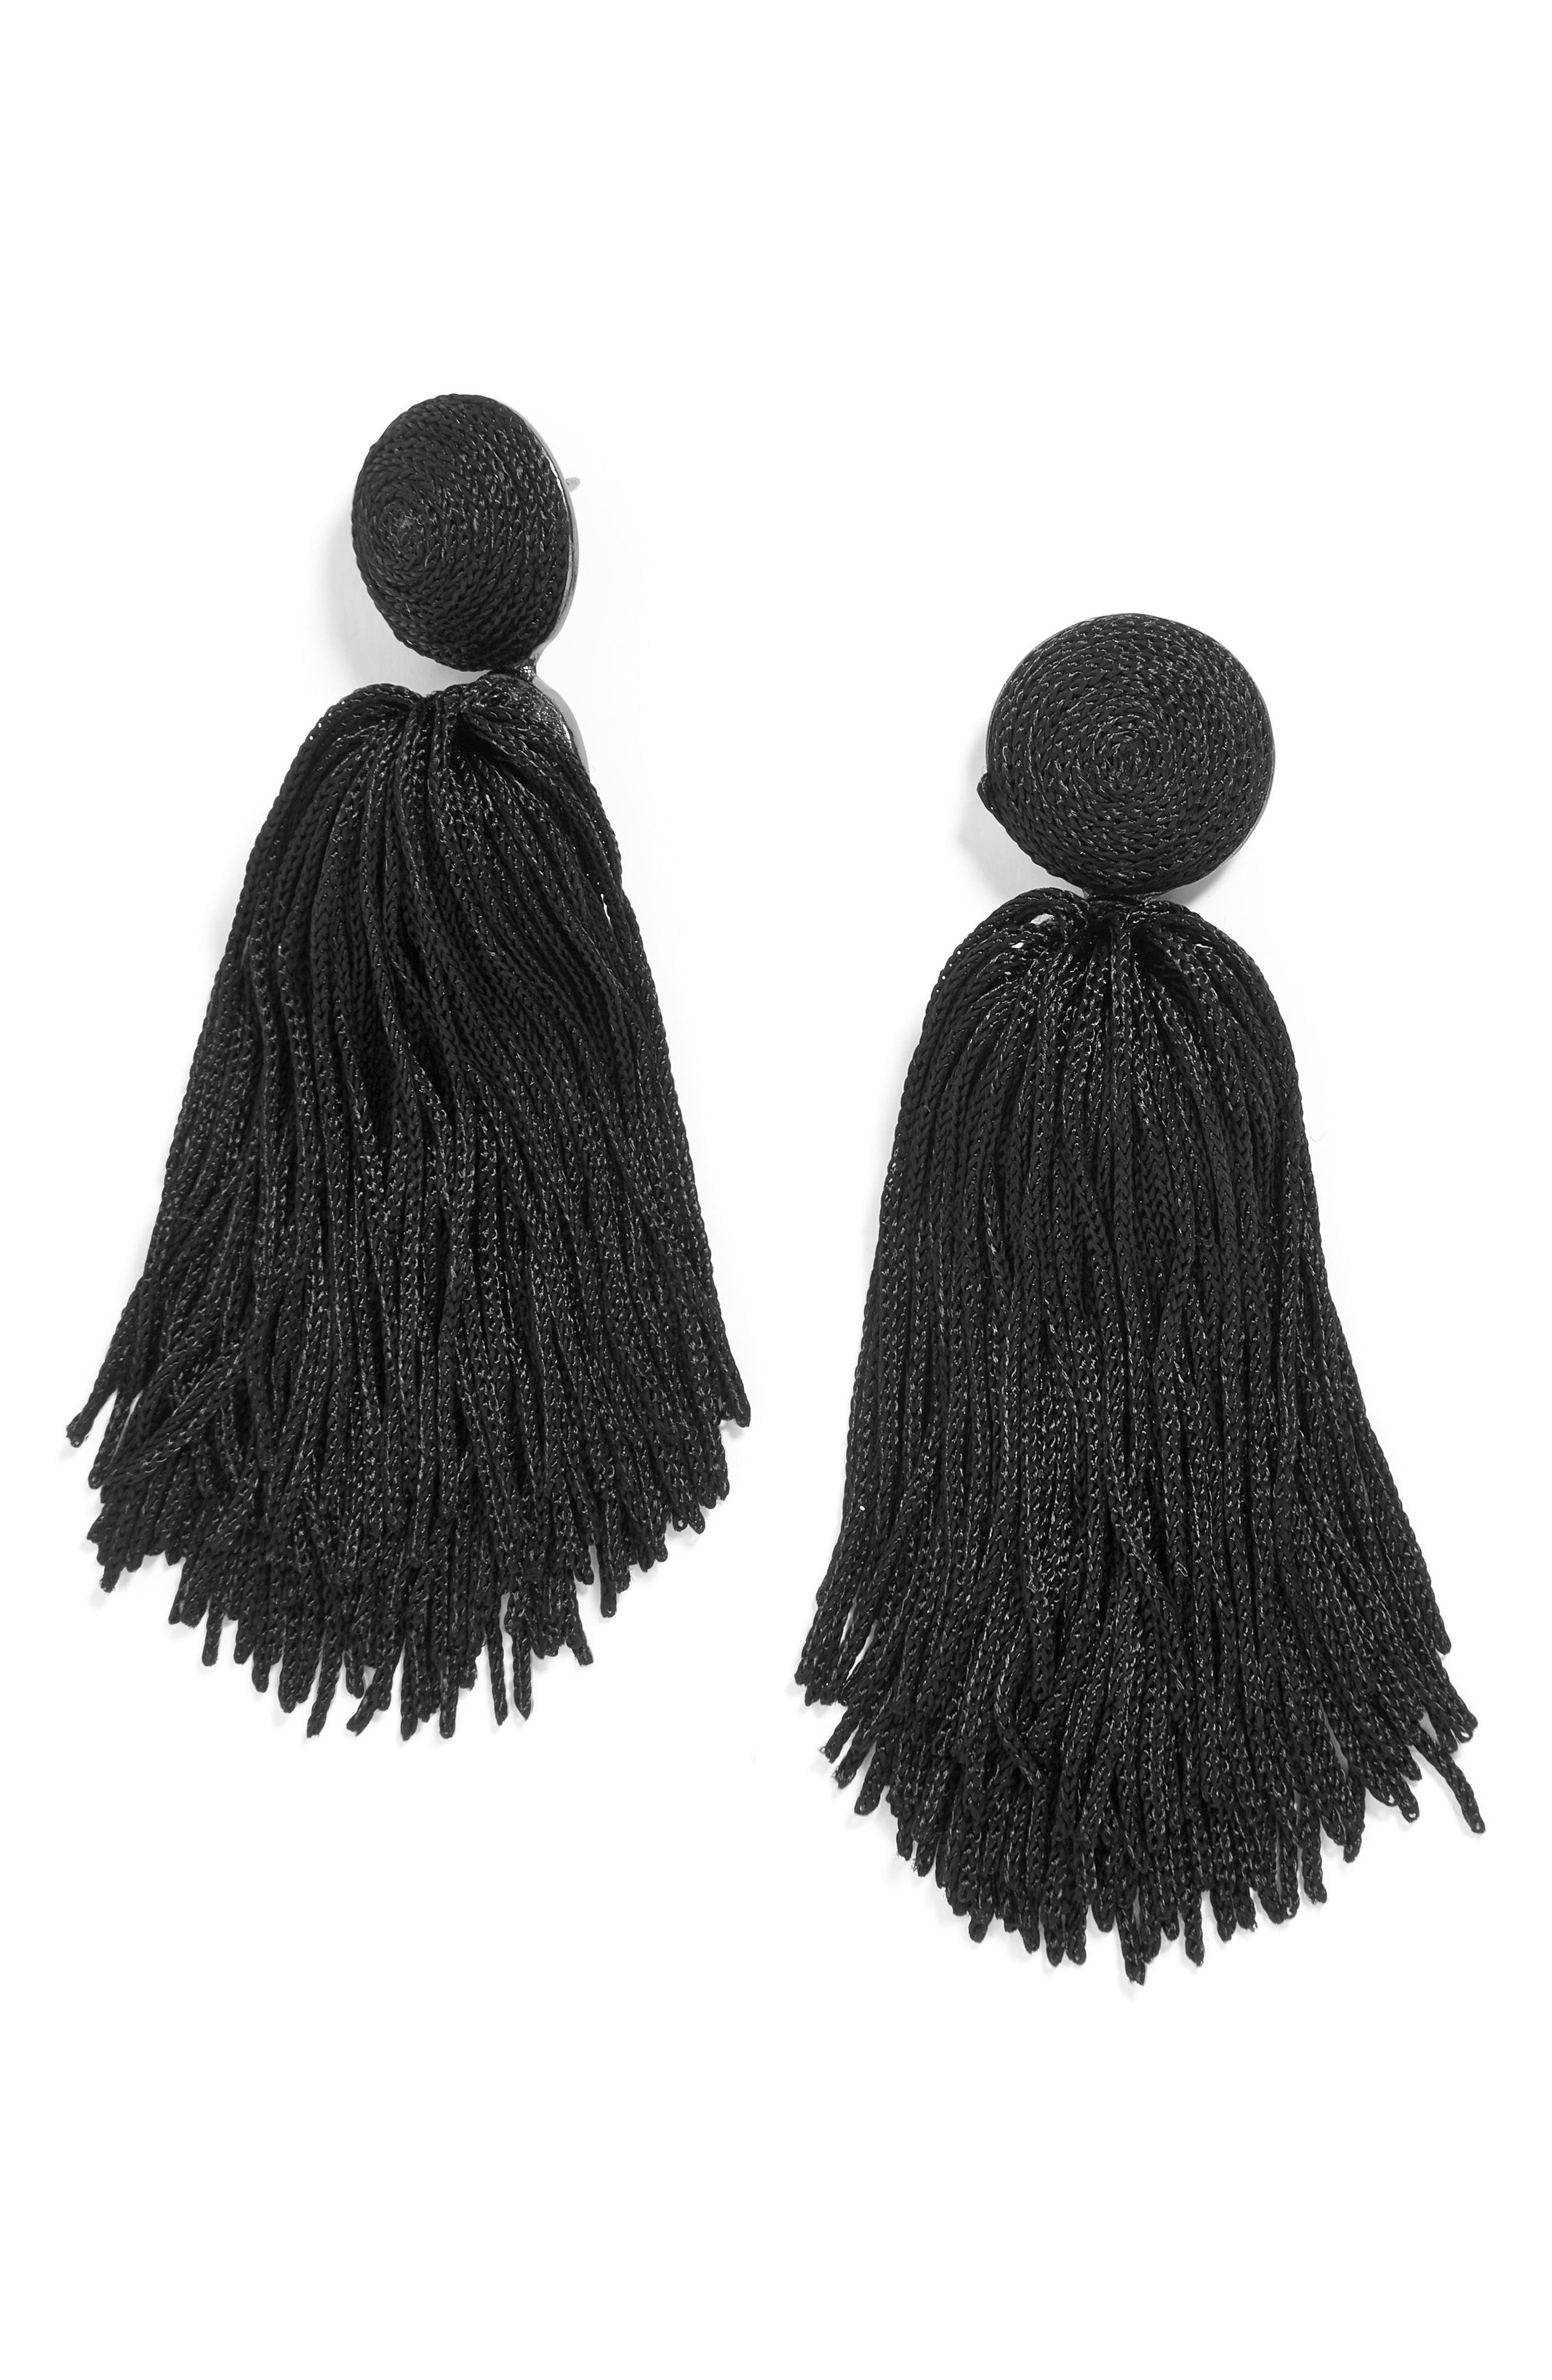 Sonatina Tassel Earrings,                         Main,                         color,